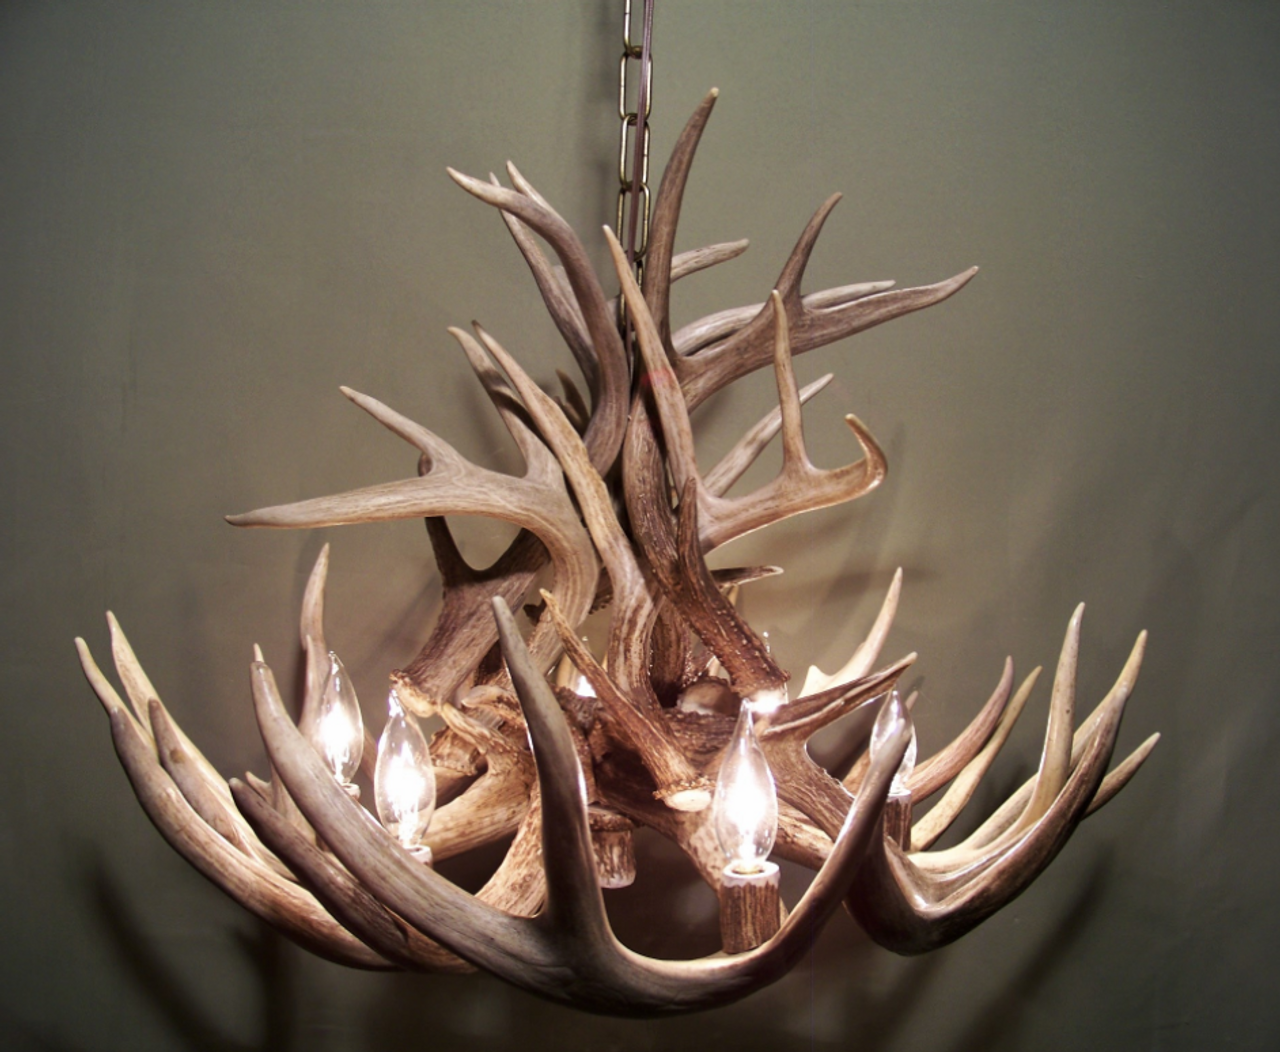 Arkansas deer antler chandelier free shipping arkansas deer antler chandelier 28 w x 16 t aloadofball Image collections